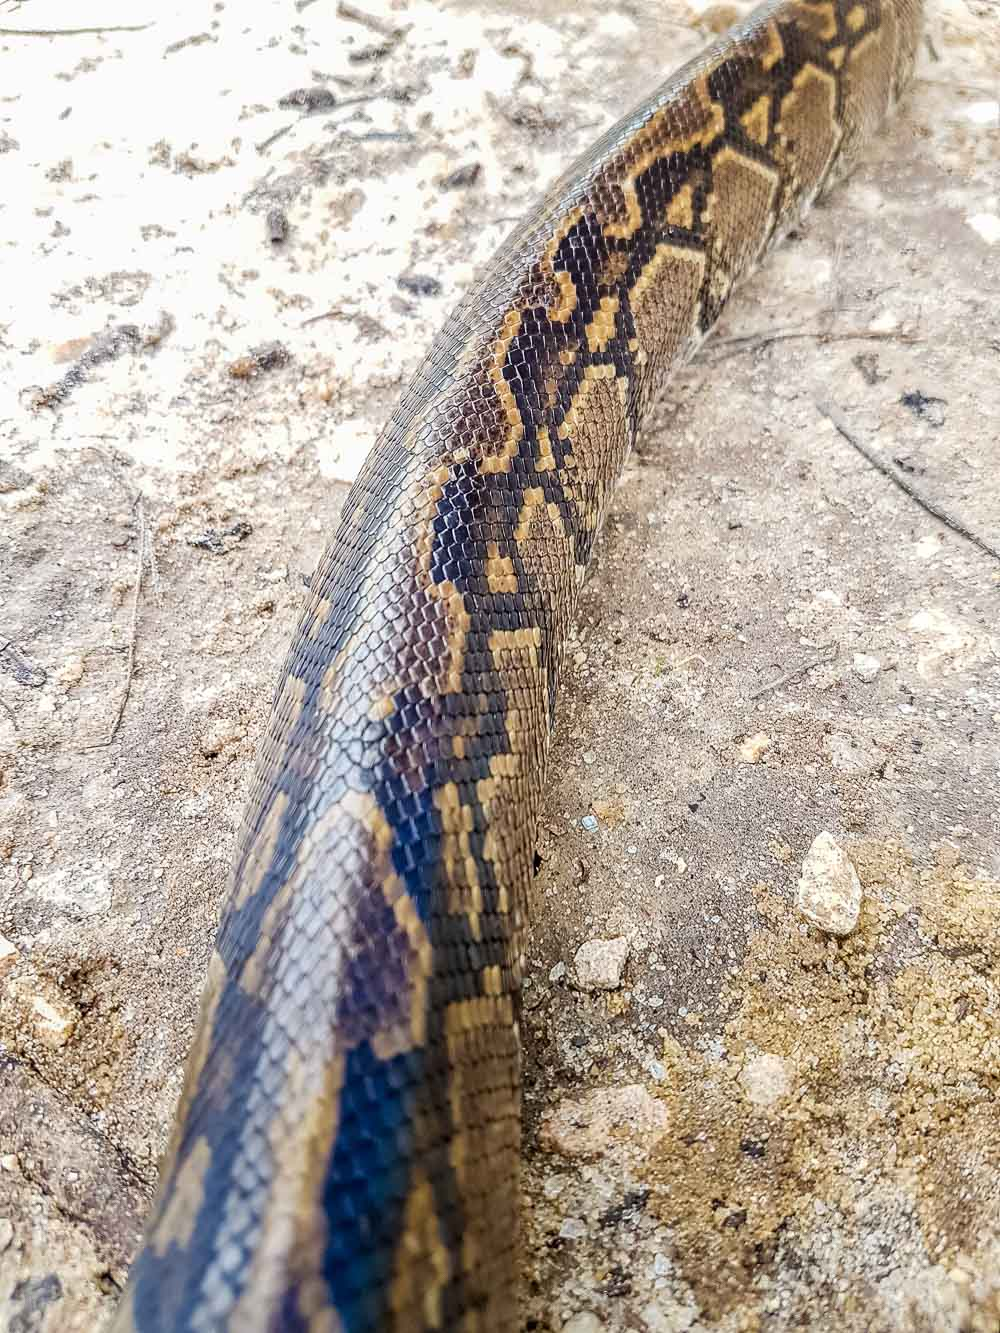 Warming Up To Snakes of Southern Africa